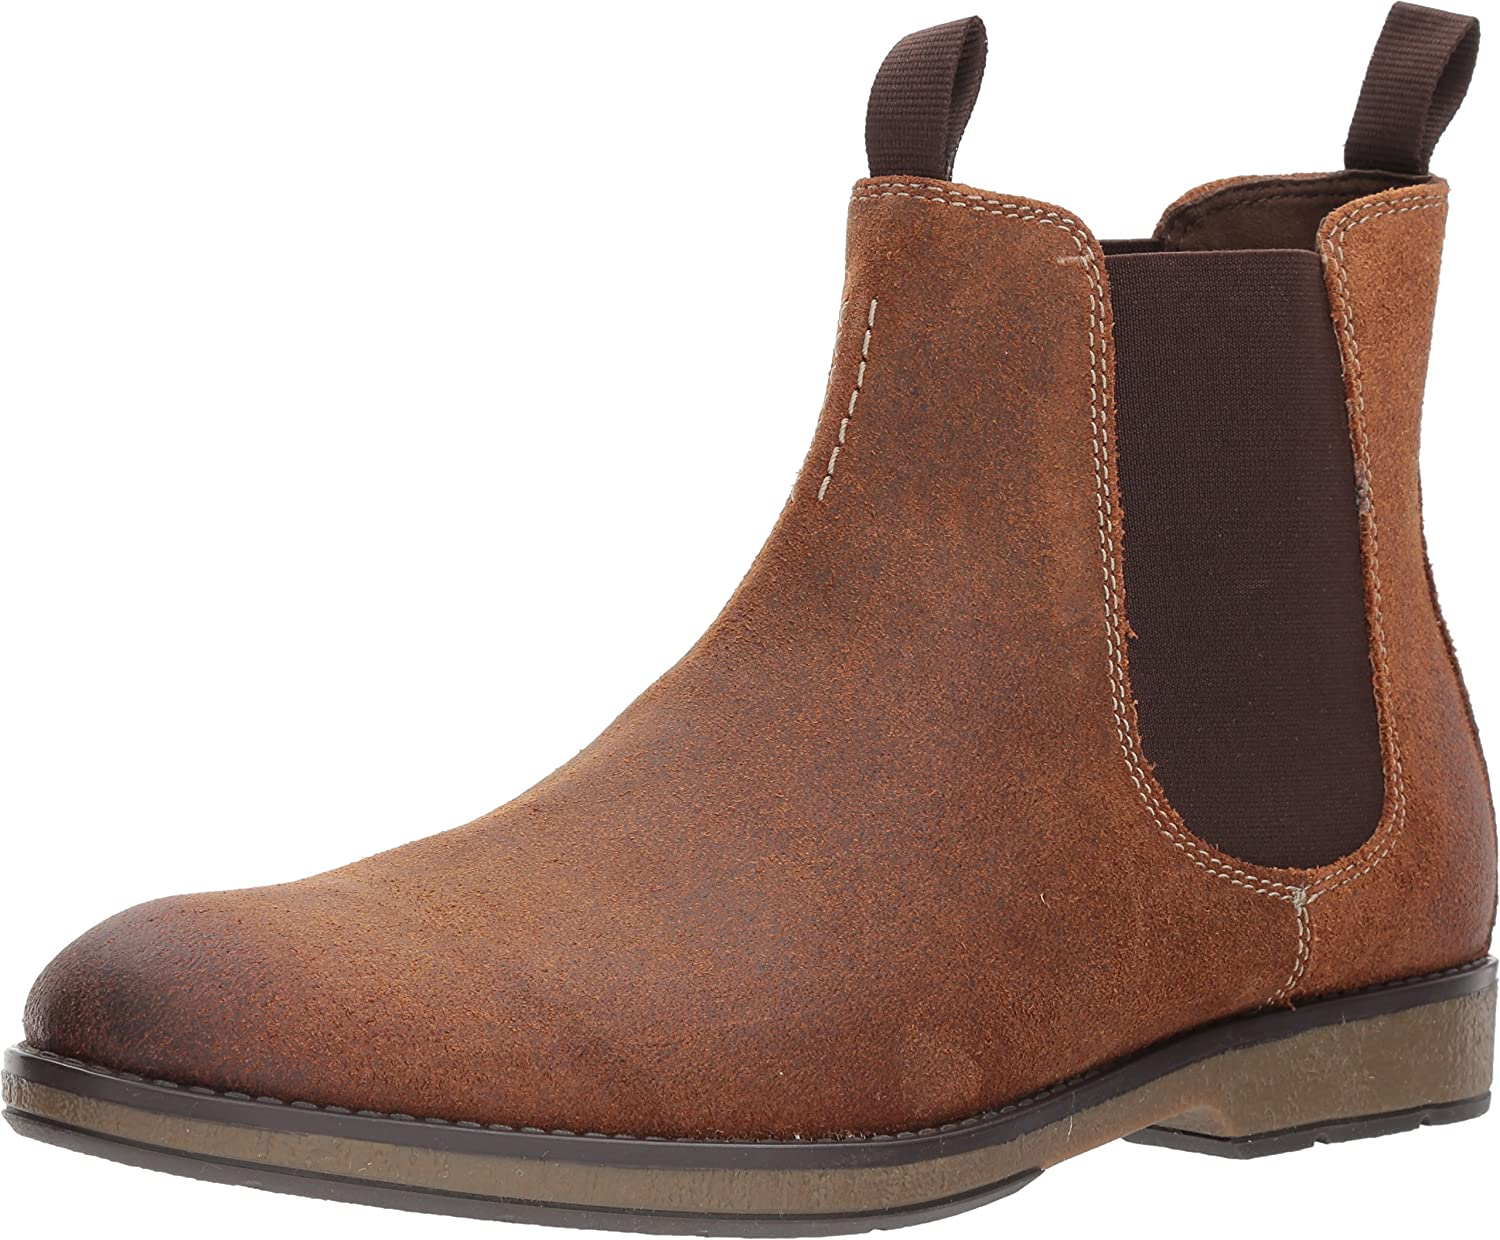 Clarks Mens Hinman Chelsea Low Boot, 14 D(M) US, Dark Tan Suede